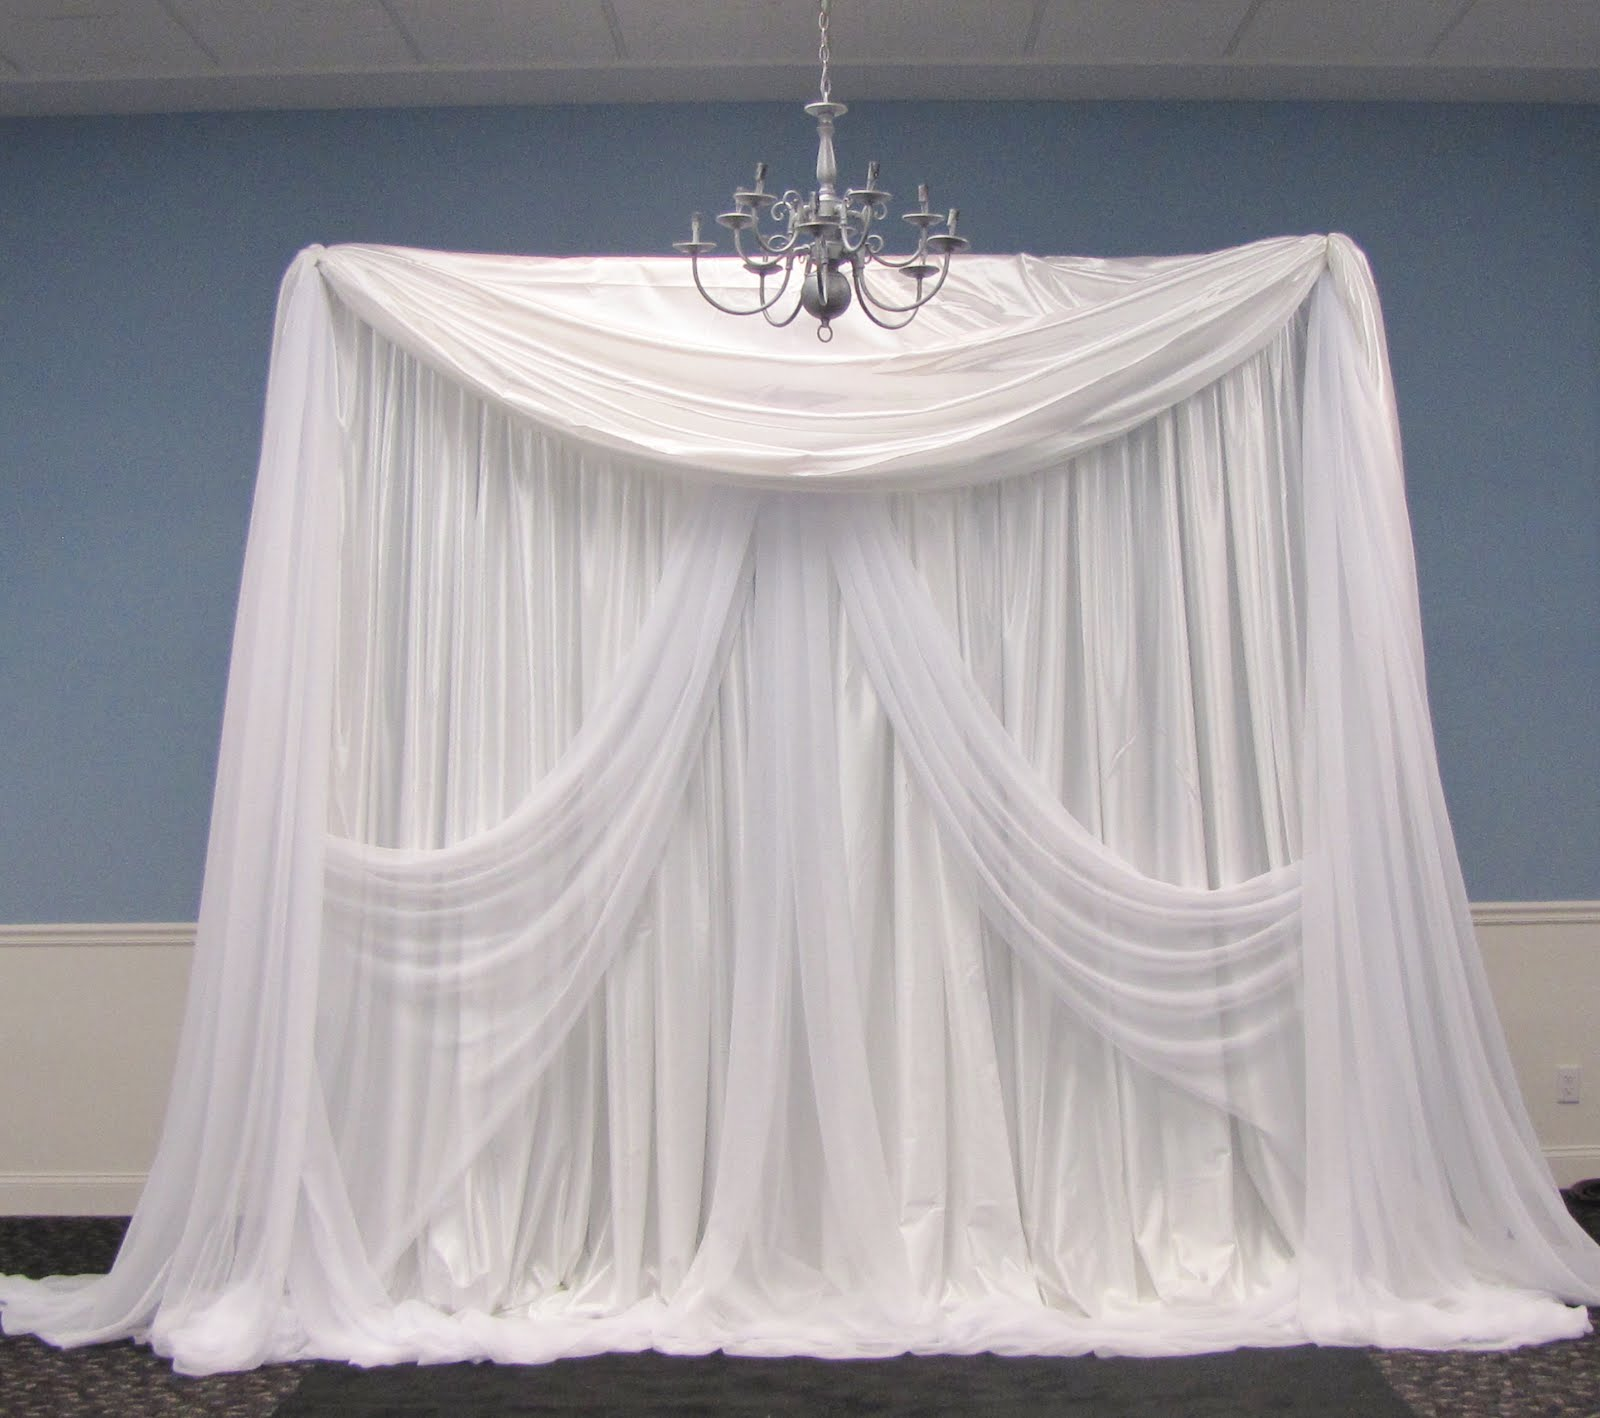 Party People Event Decorating Company Elegant Wedding Ceremony Backdrop